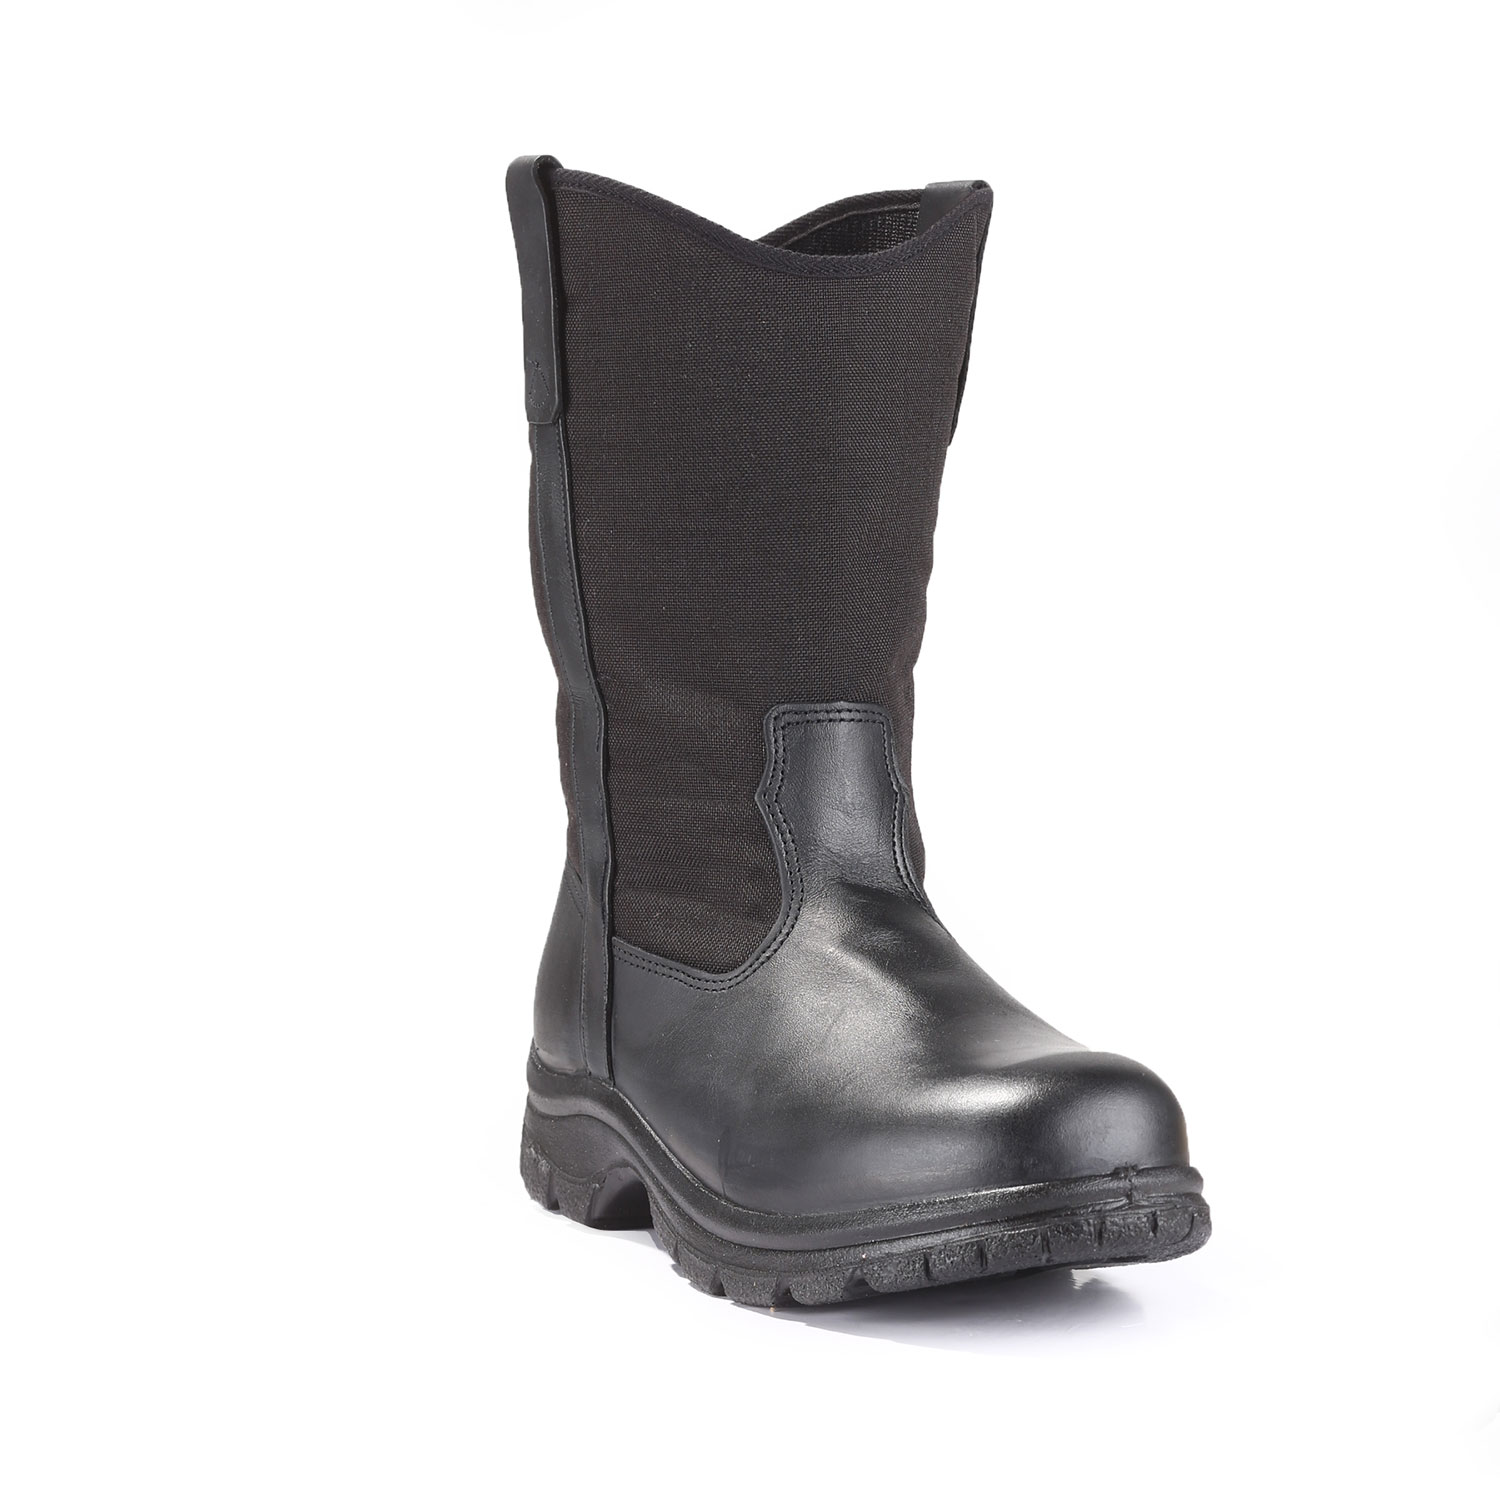 "Thorogood SoftStreets 10"" Wellington Boot"